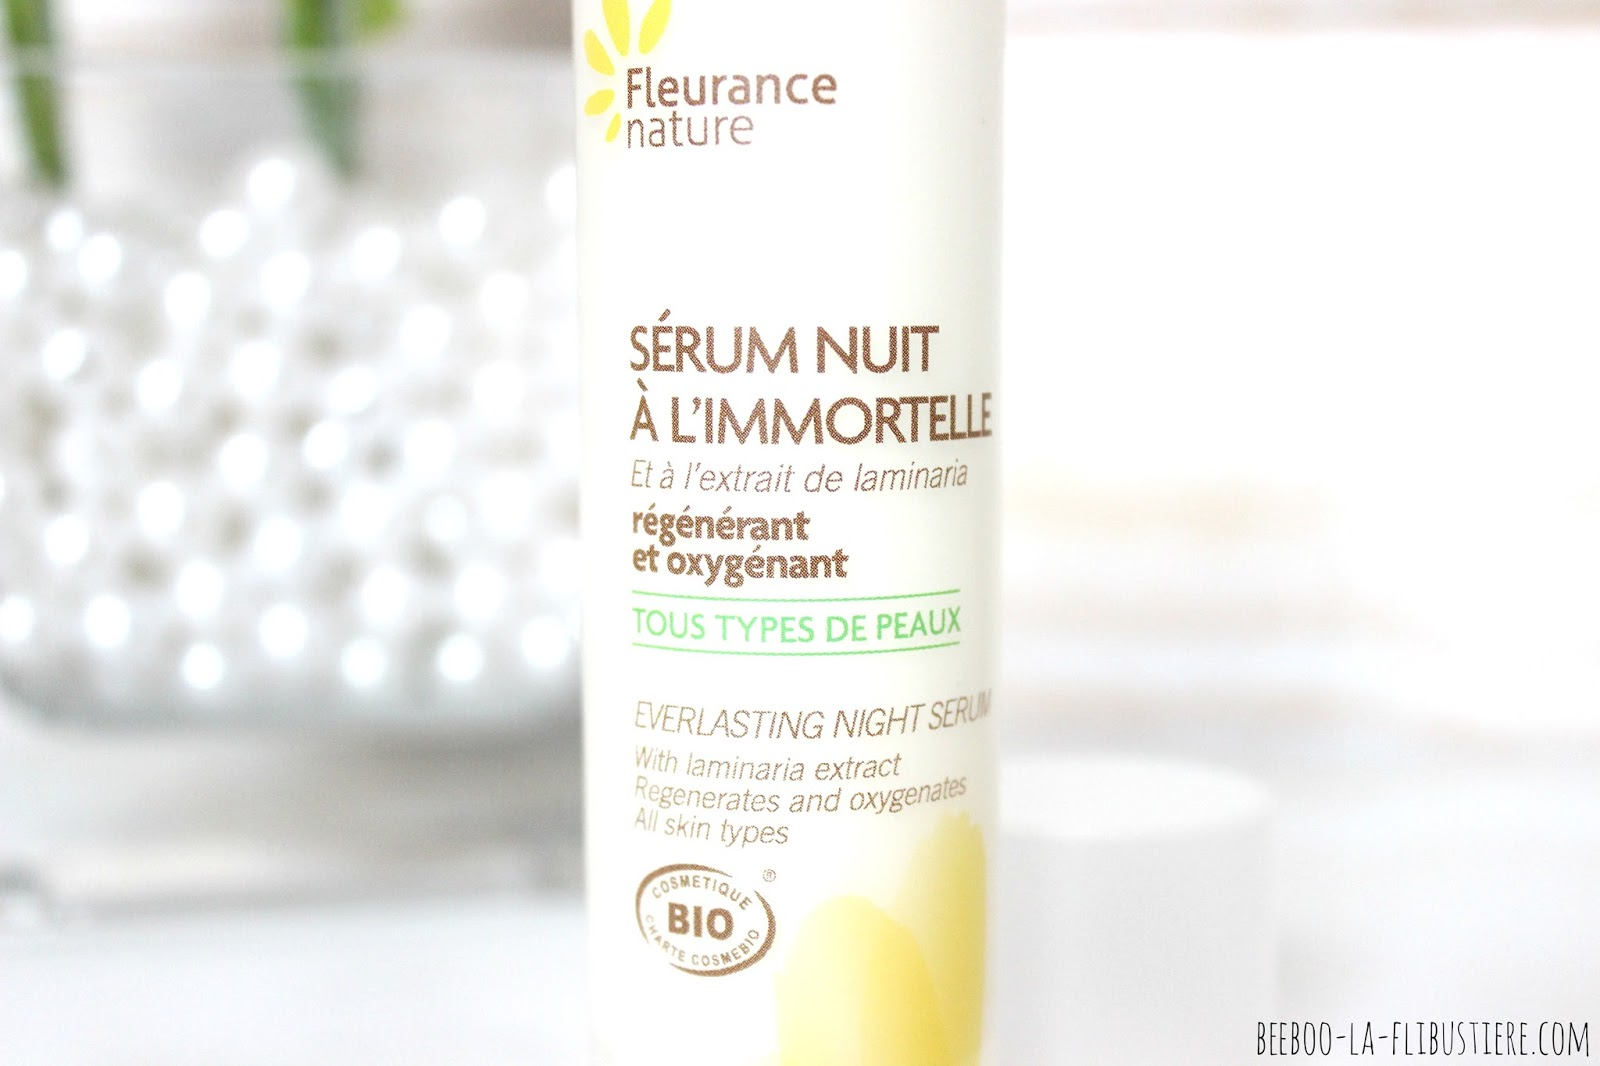 sérum nuit à l'immortelle fleurance nature